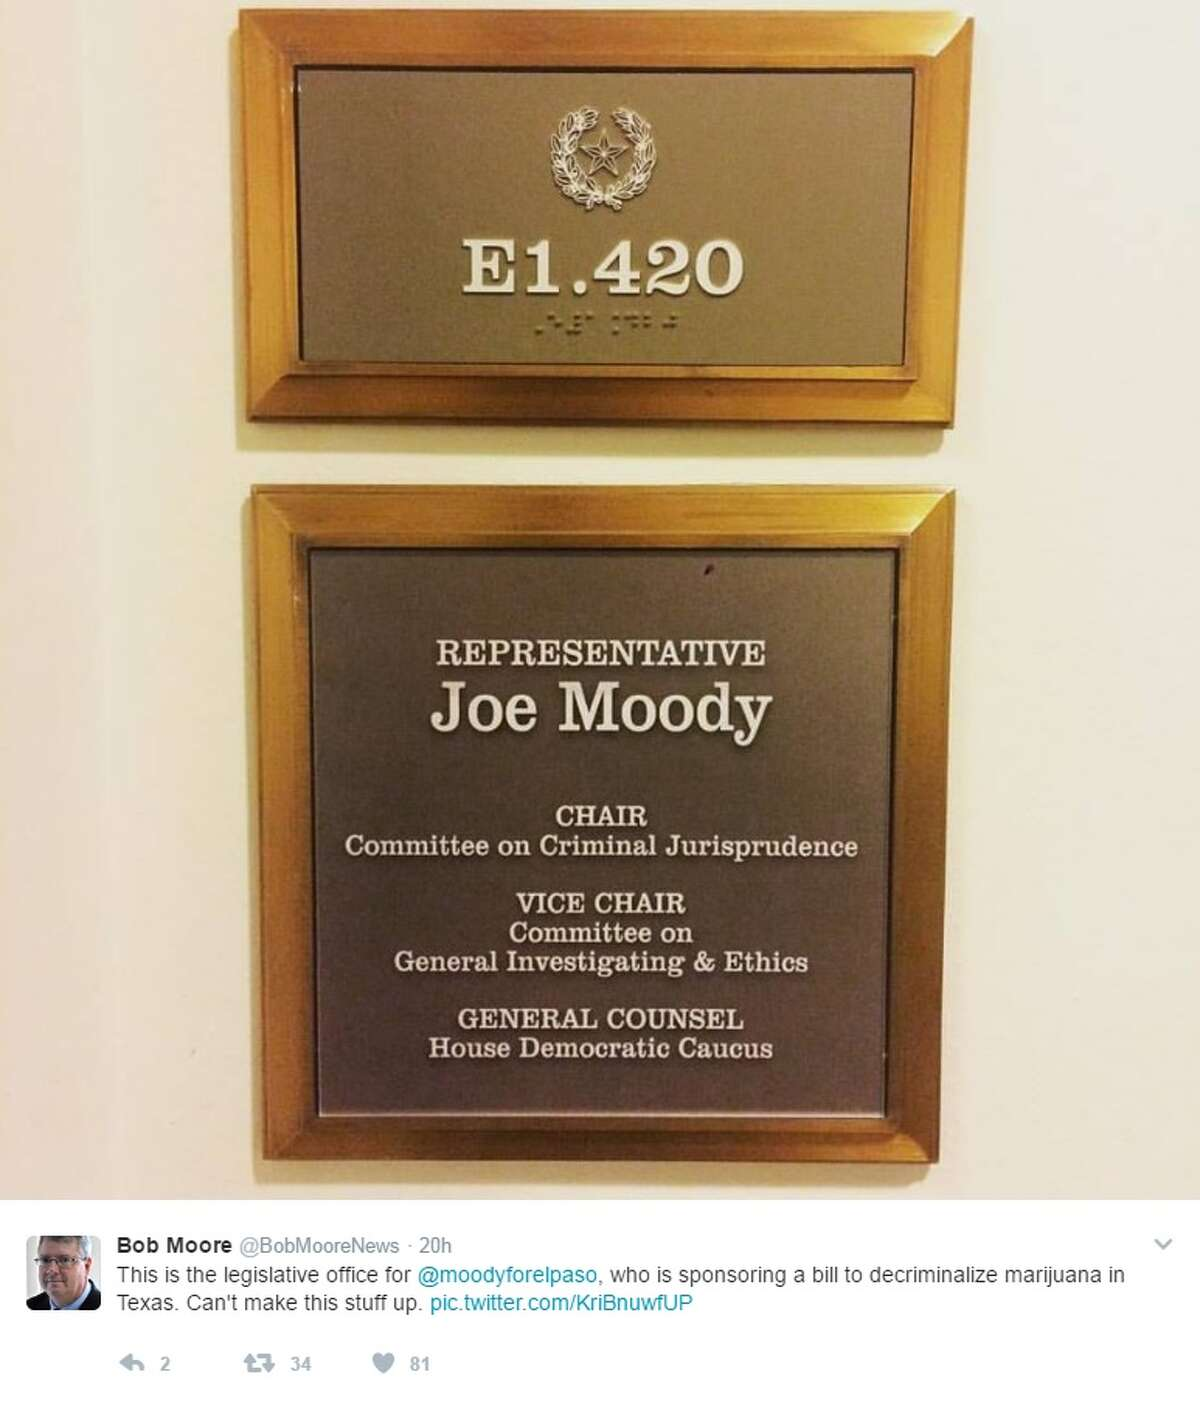 """@BobMooreNews: """"This is the legislative office for @moodyforelpaso, who is sponsoring a bill to decriminalize marijuana in Texas. Can't make this stuff up."""""""